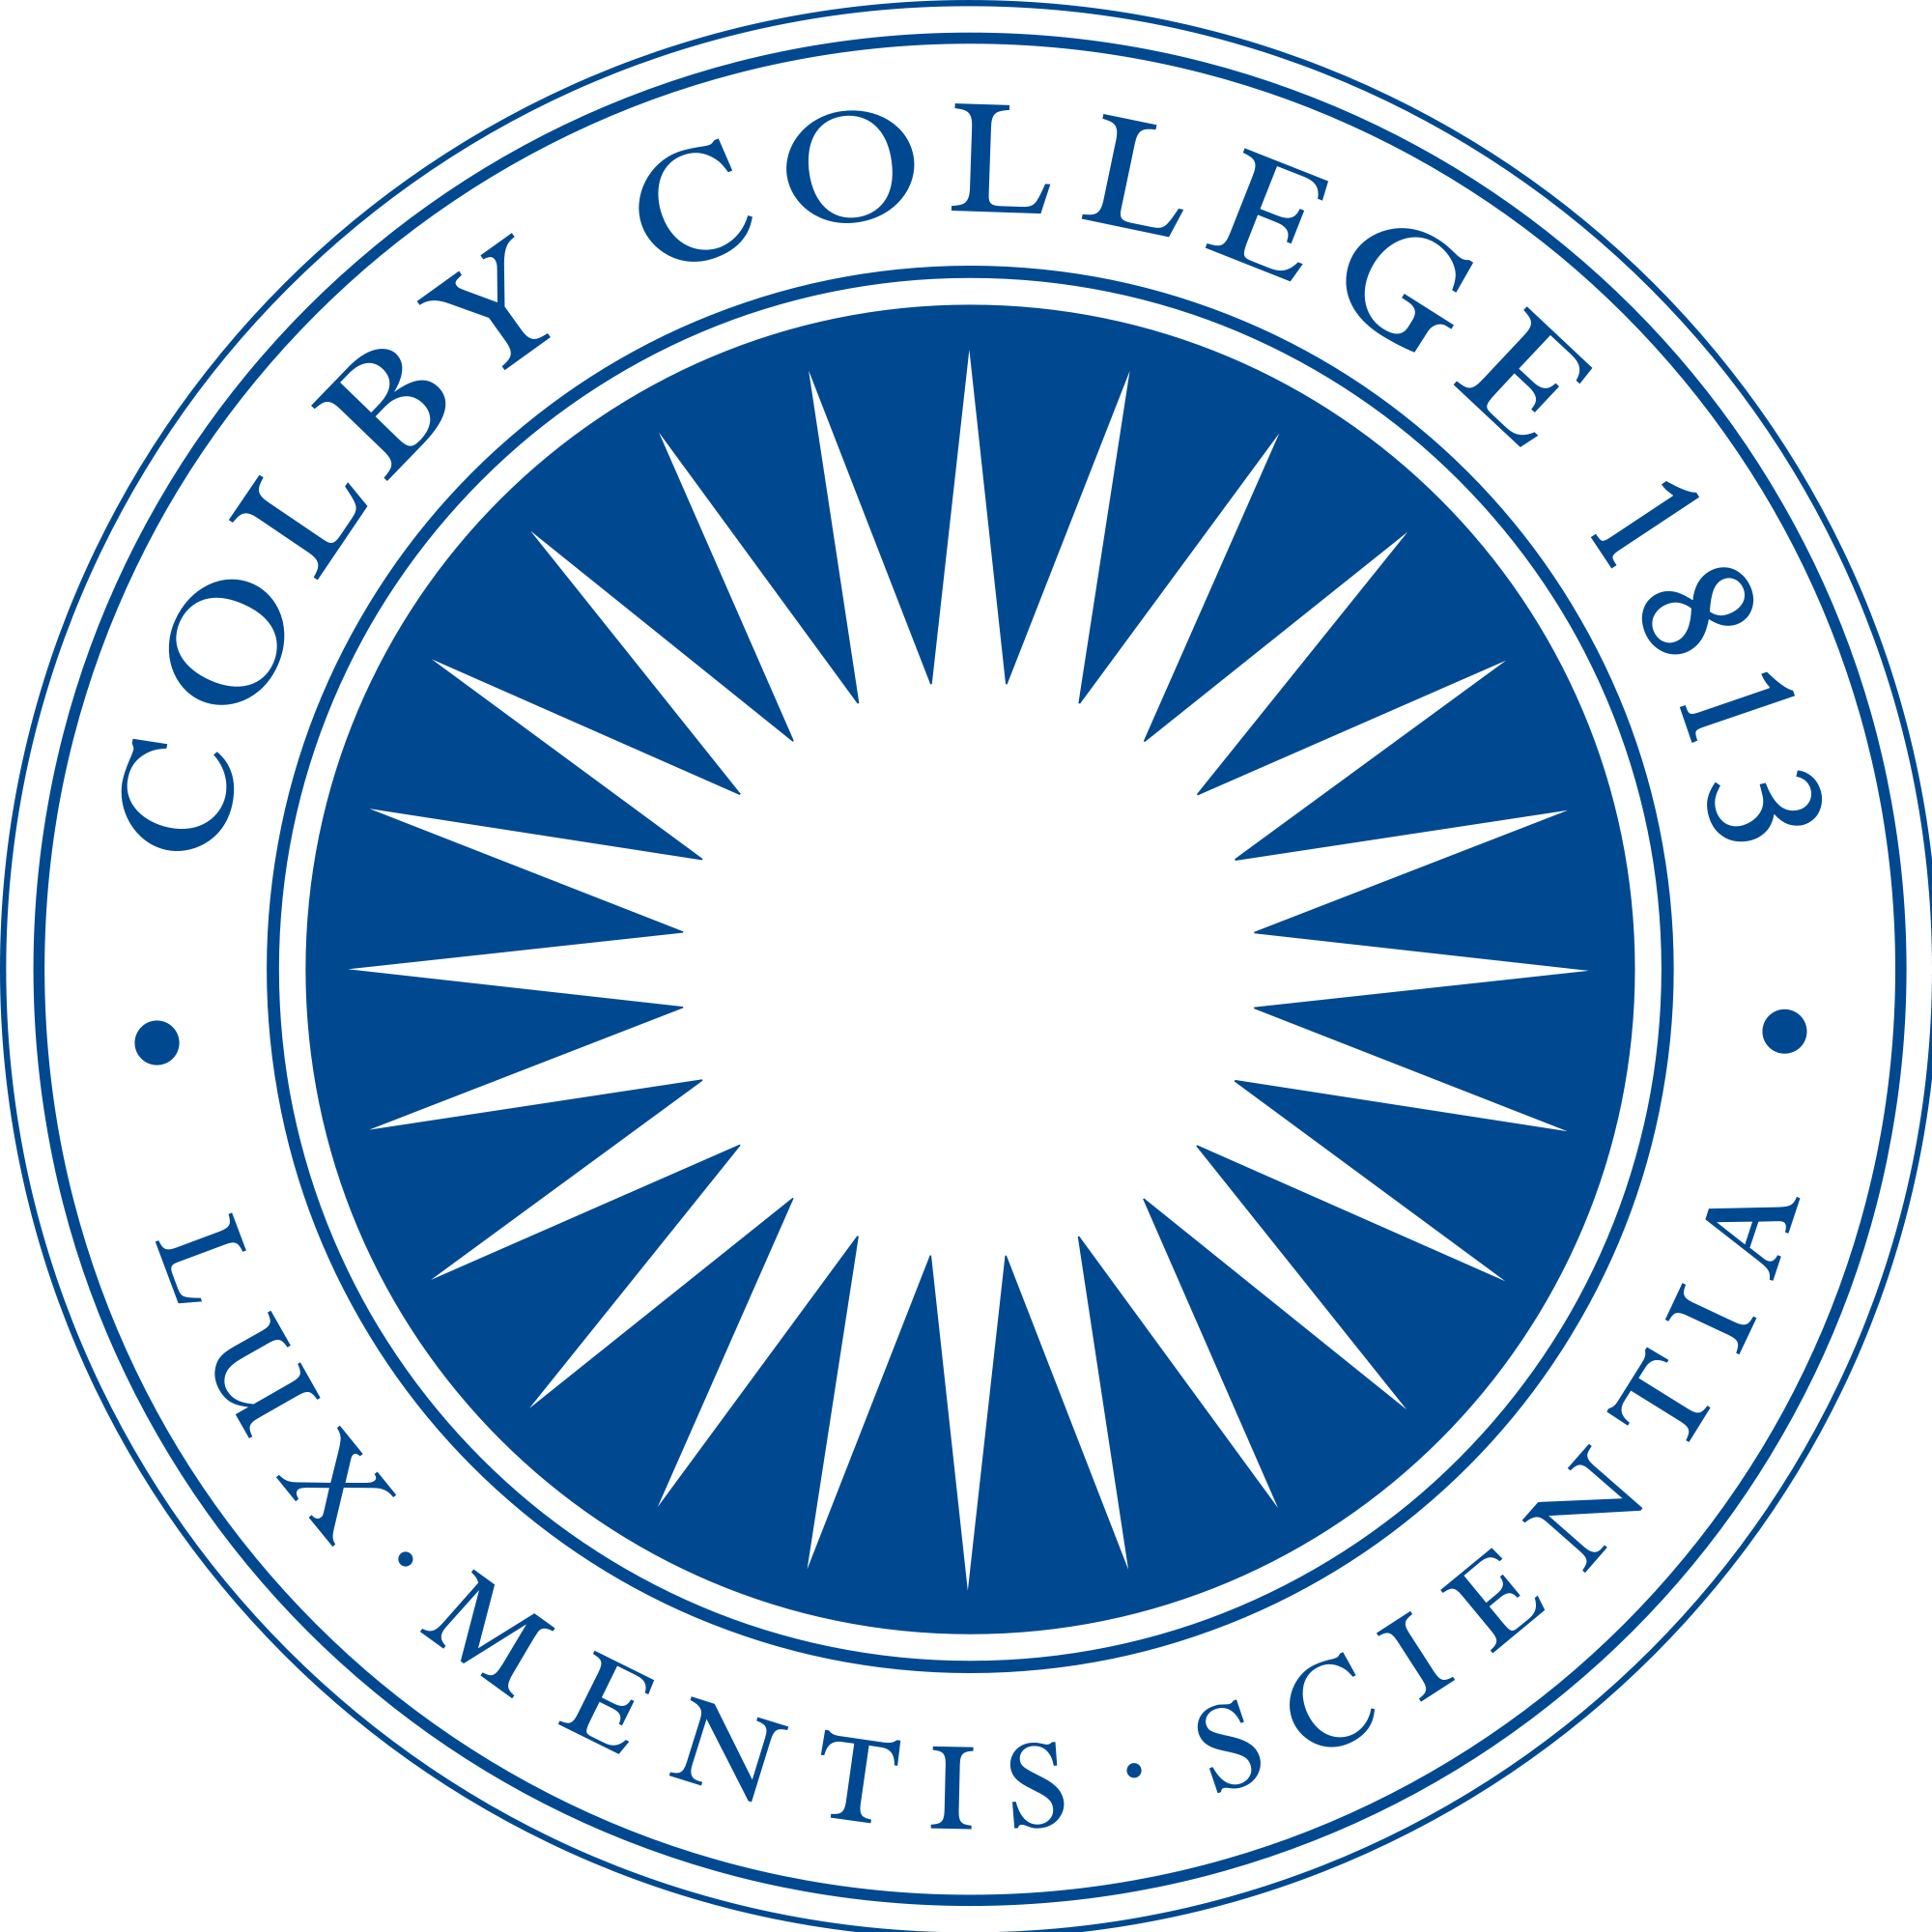 Colby College.